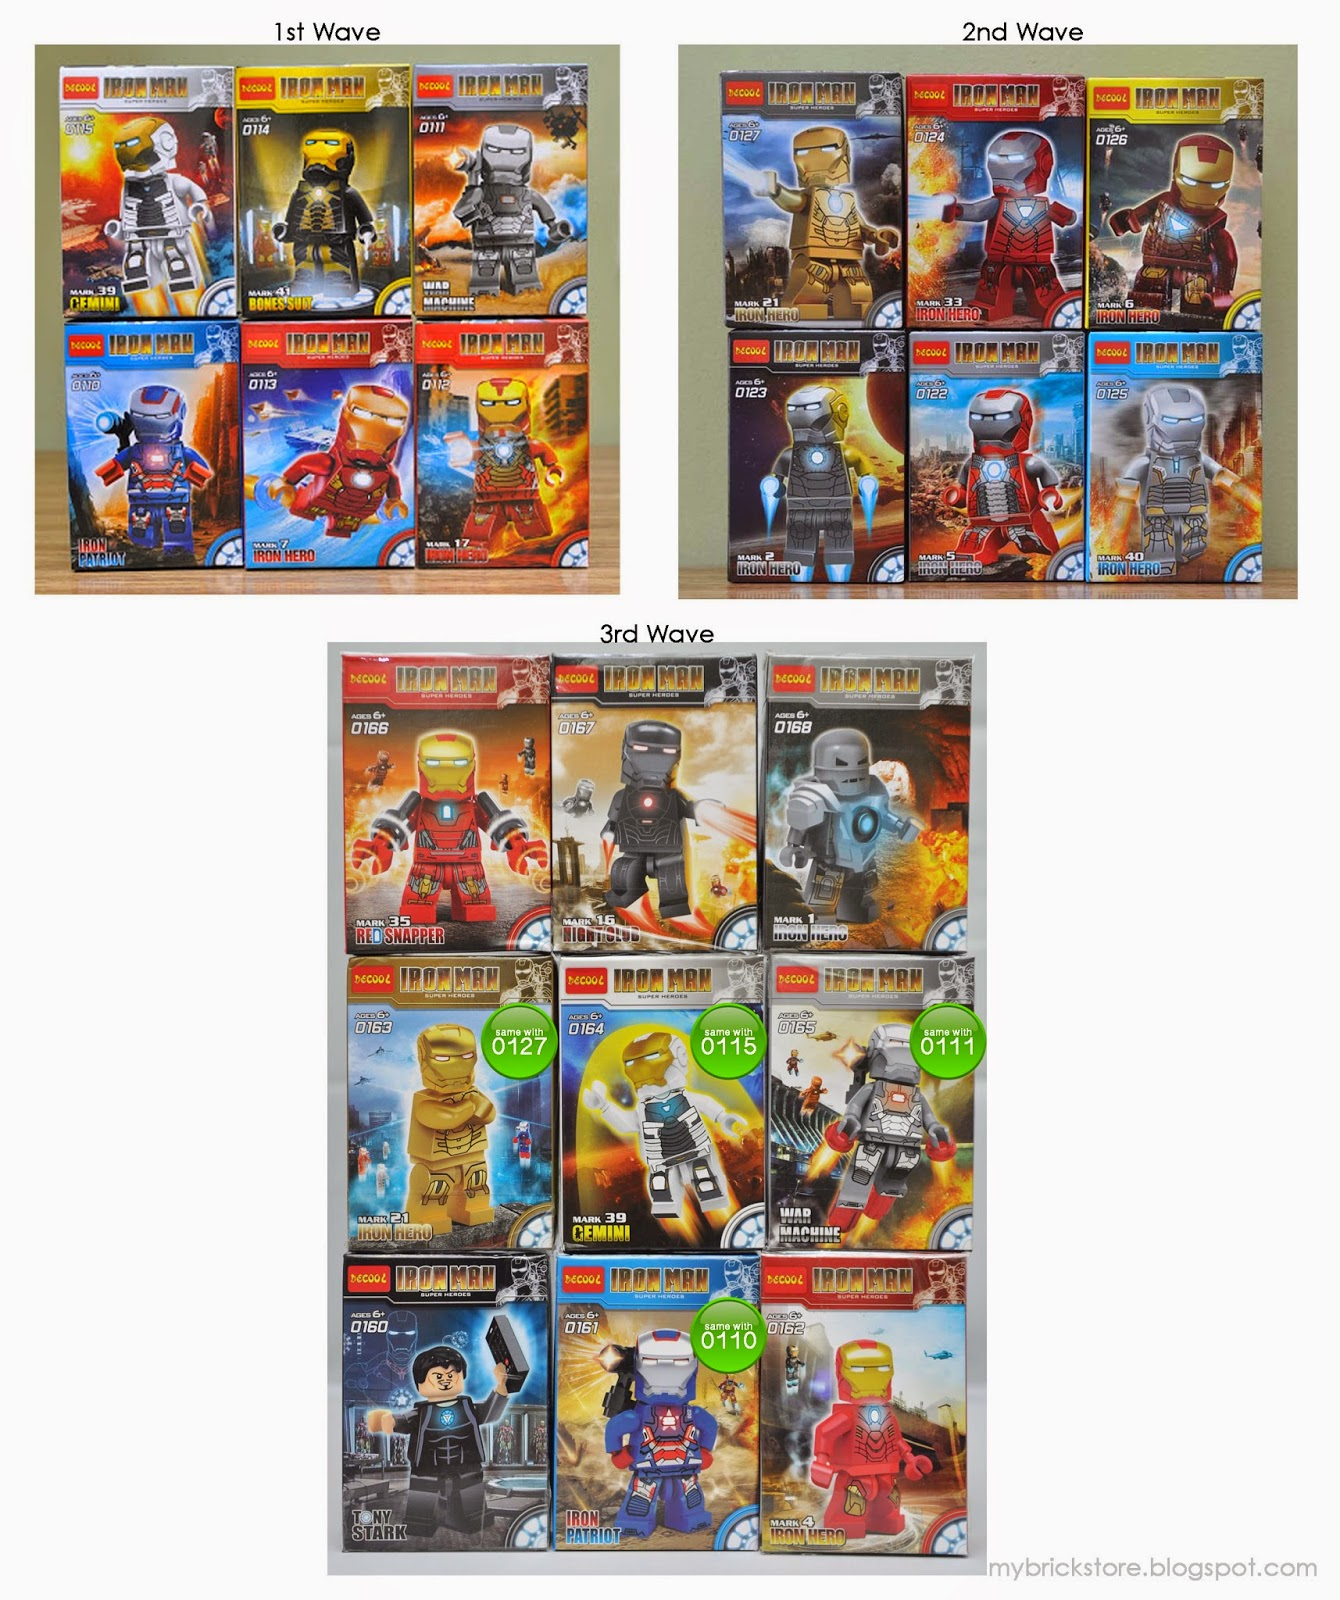 all iron man from this set except mark 1 and tony stark come with extra bricks 4x4 plate and some trans clear 2x1 bricks to make the bootleg iron man 2 starring